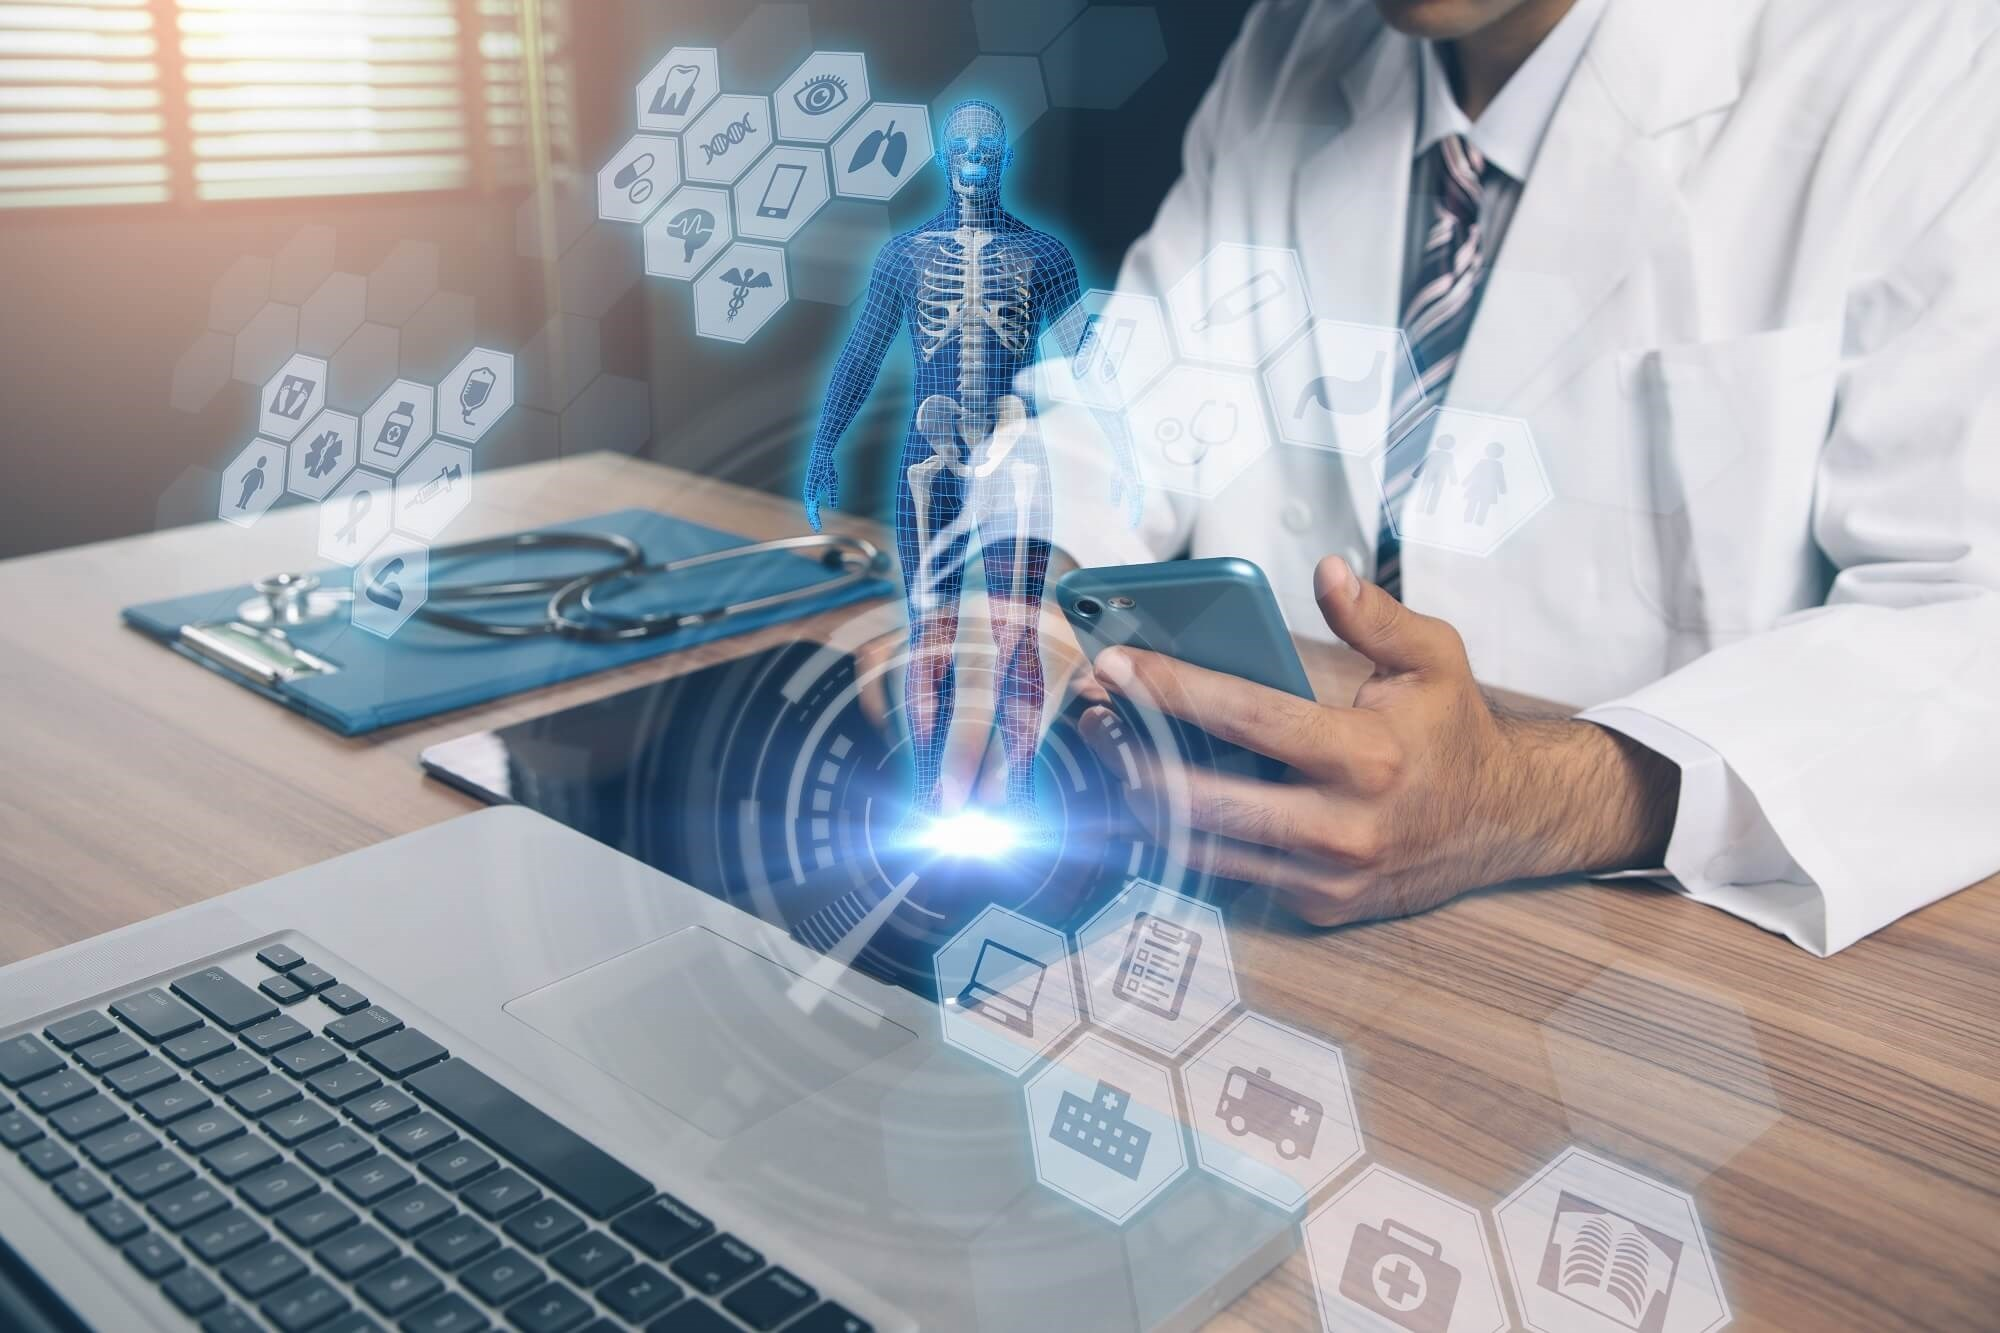 From 2005 to 2017, there was a substantial increase in telemedicine use, although use was still uncommon in 2017.